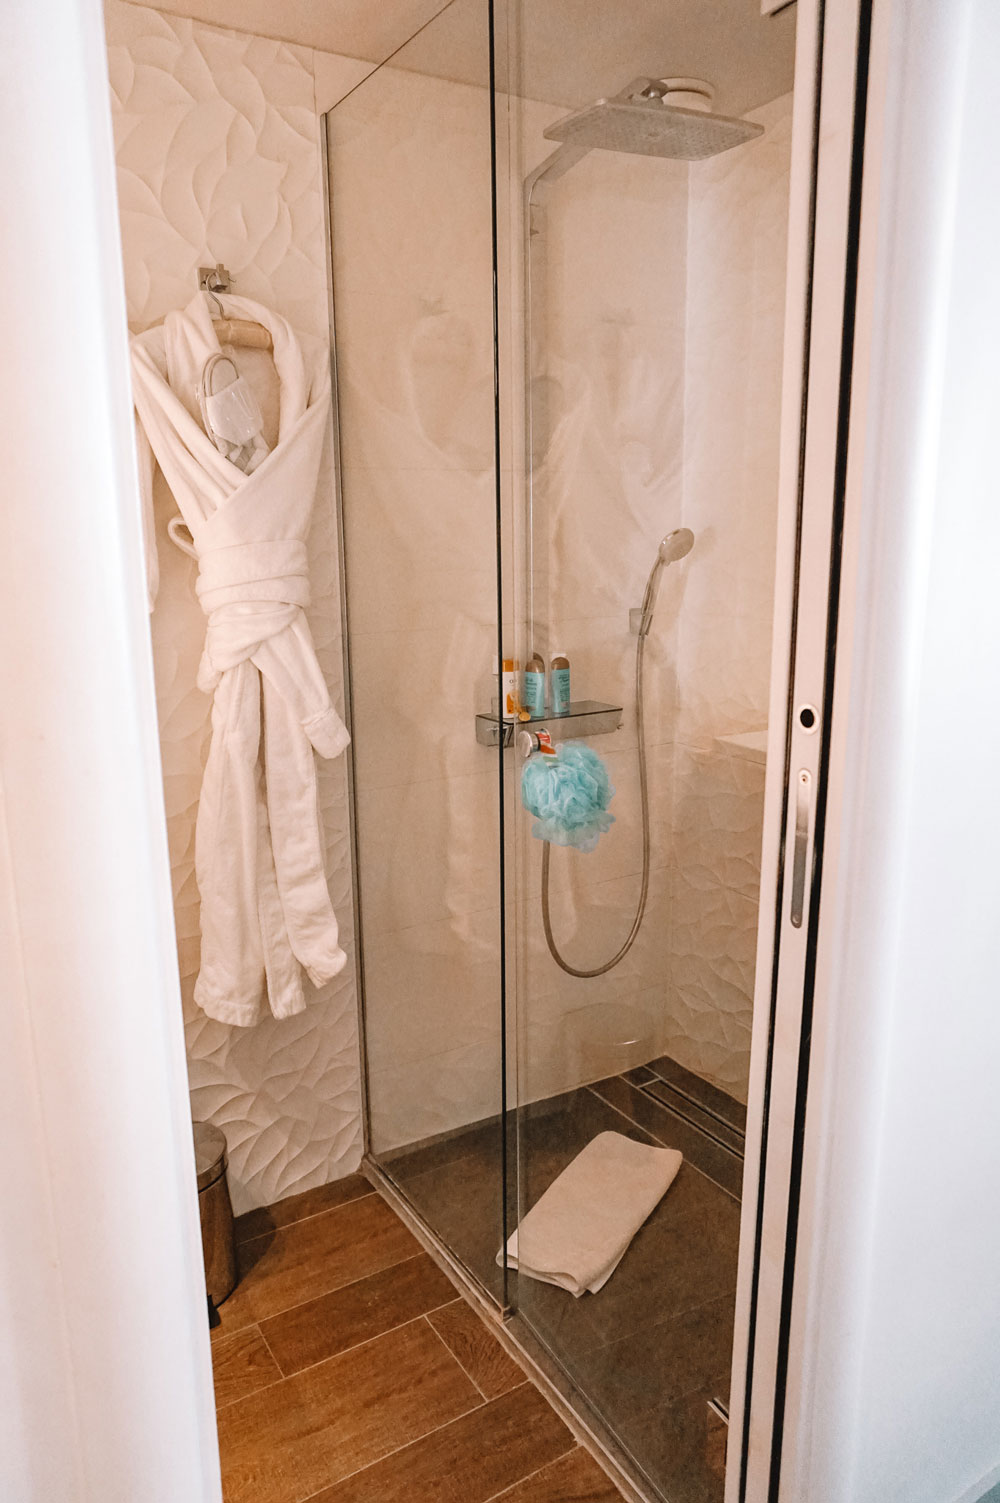 Hotel Chavanel's rainfall shower head